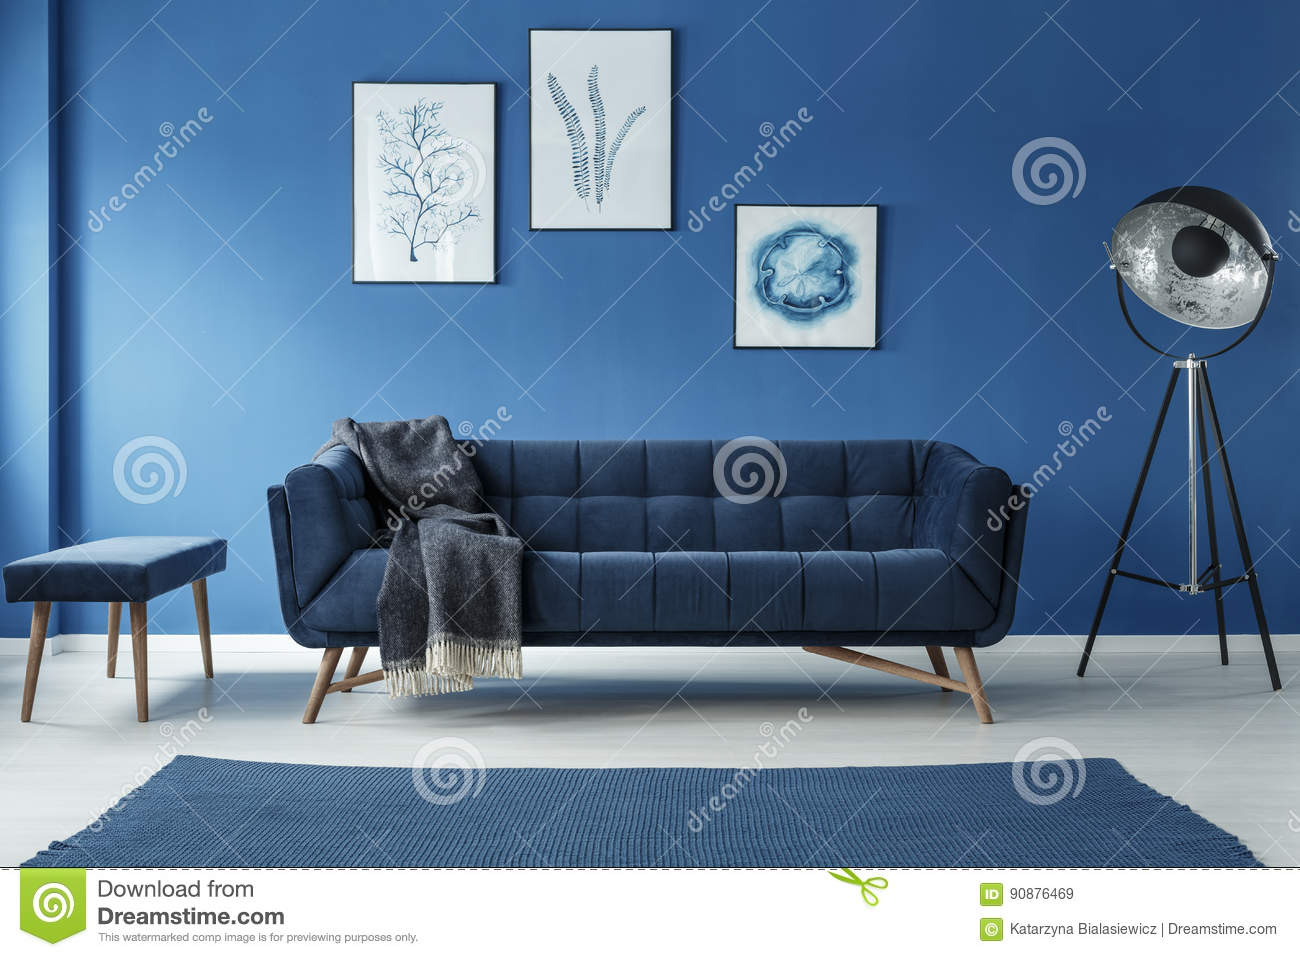 Astounding Fancy Grey Lamp Stock Image Image Of Interior Date 90876469 Inzonedesignstudio Interior Chair Design Inzonedesignstudiocom